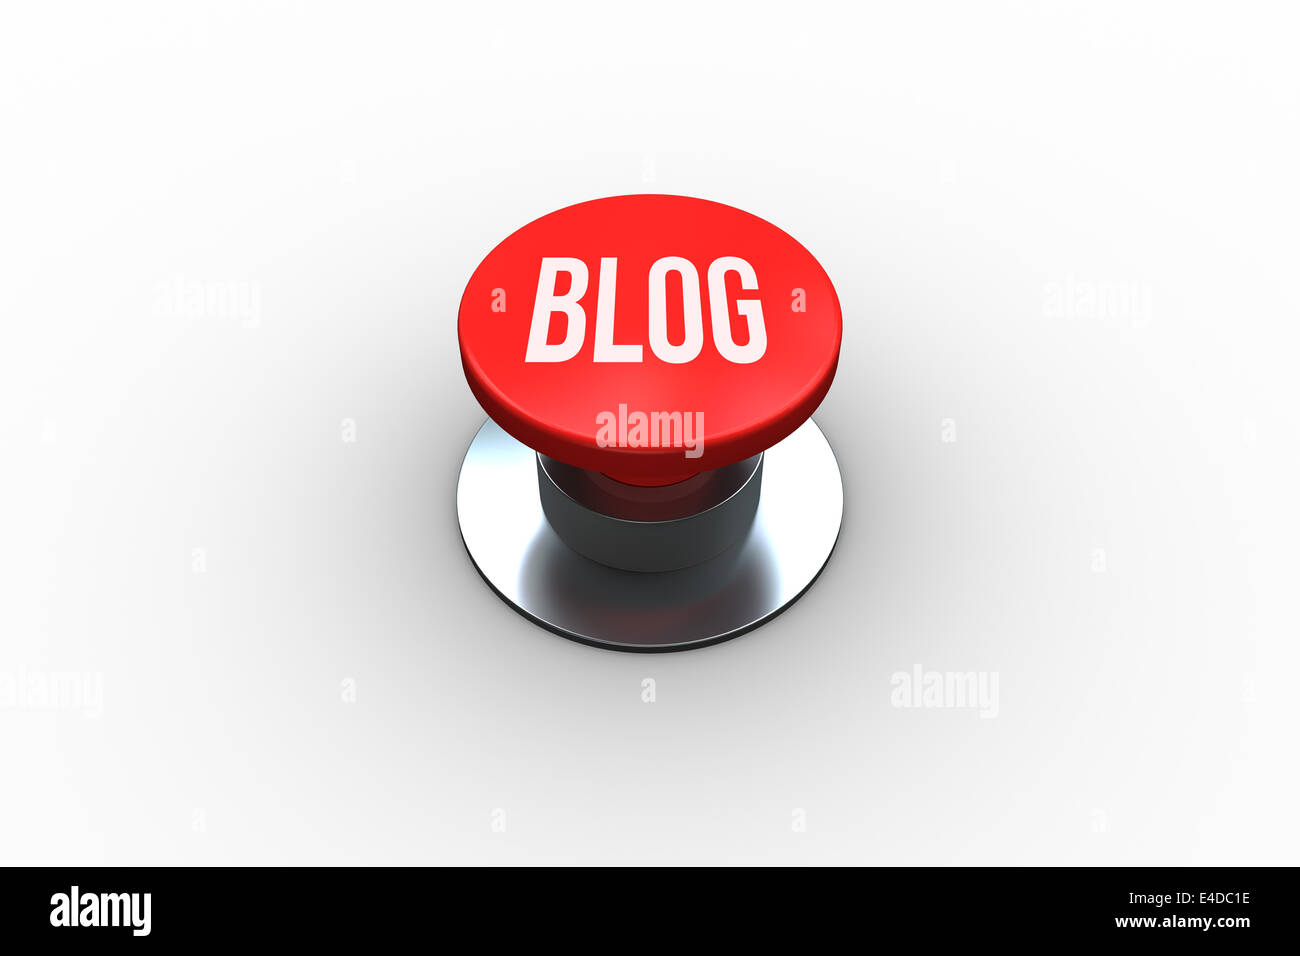 Blog on digitally generated red push button - Stock Image